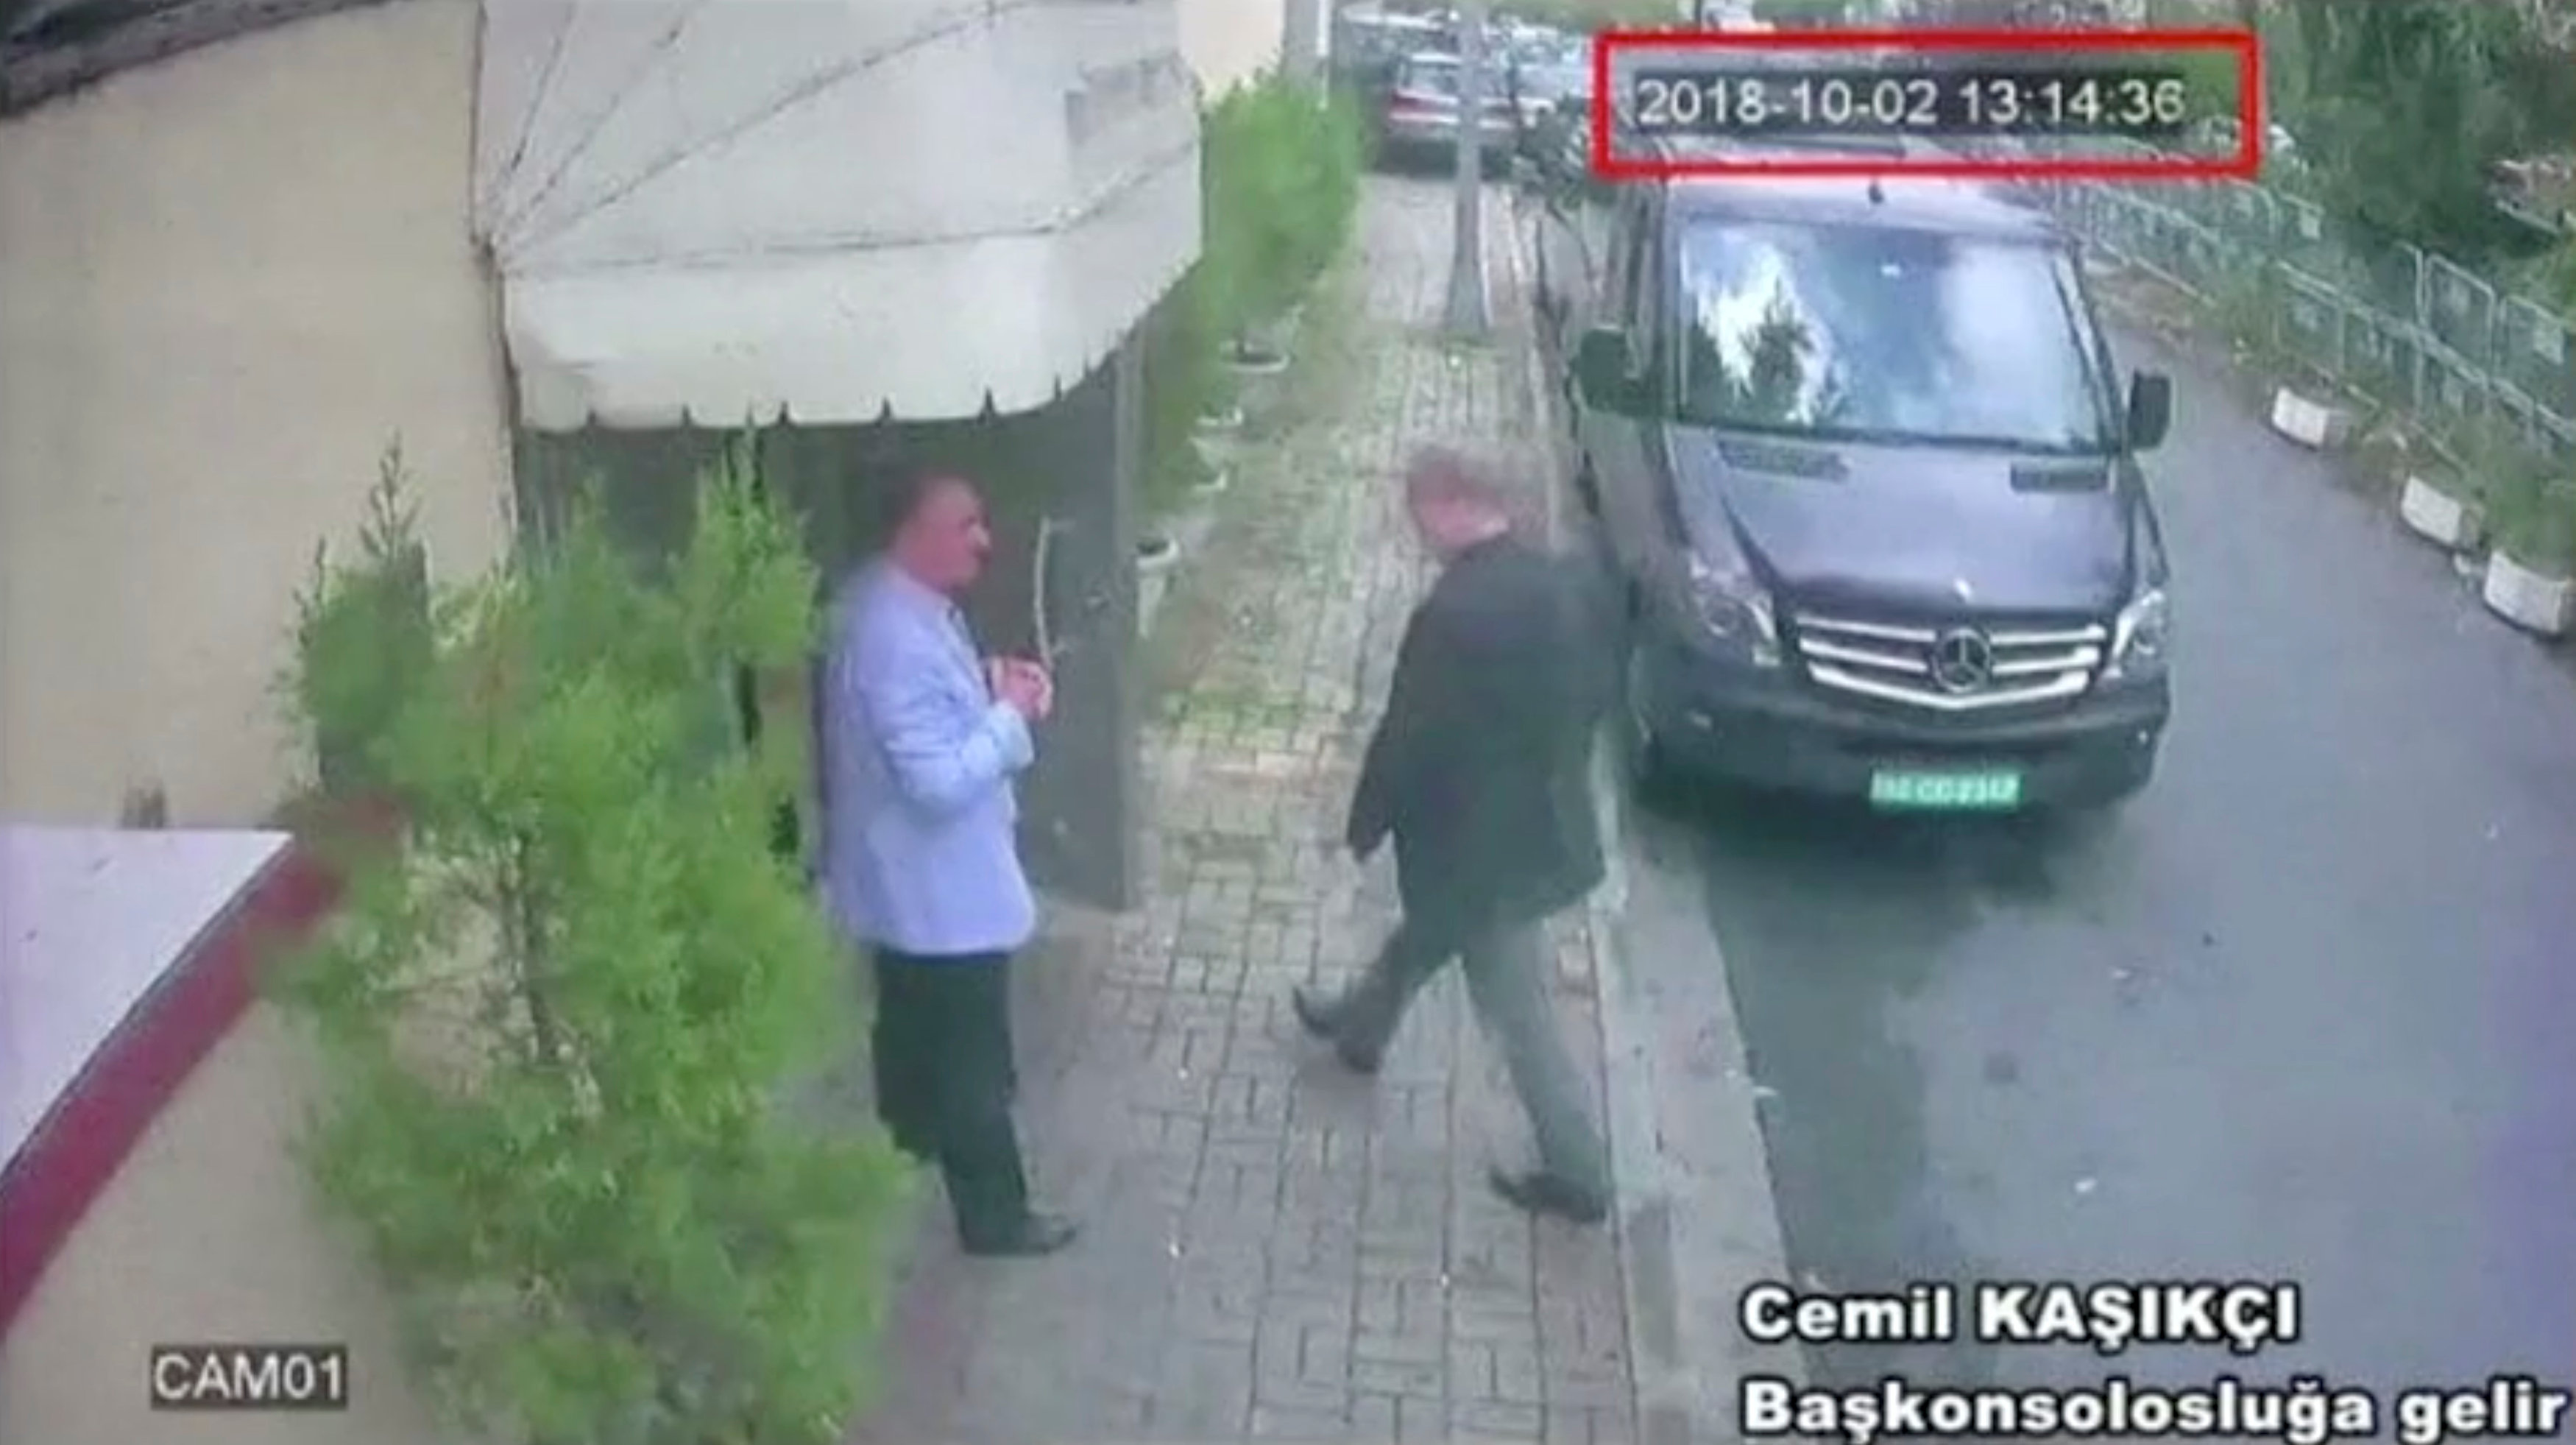 A still image taken from CCTV video and obtained by TRT World claims to show Saudi journalist Jamal Khashoggi as he arrives at Saudi Arabia's consulate in Istanbul, Turkey Oct. 2, 2018. Reuters TV/via REUTERS.